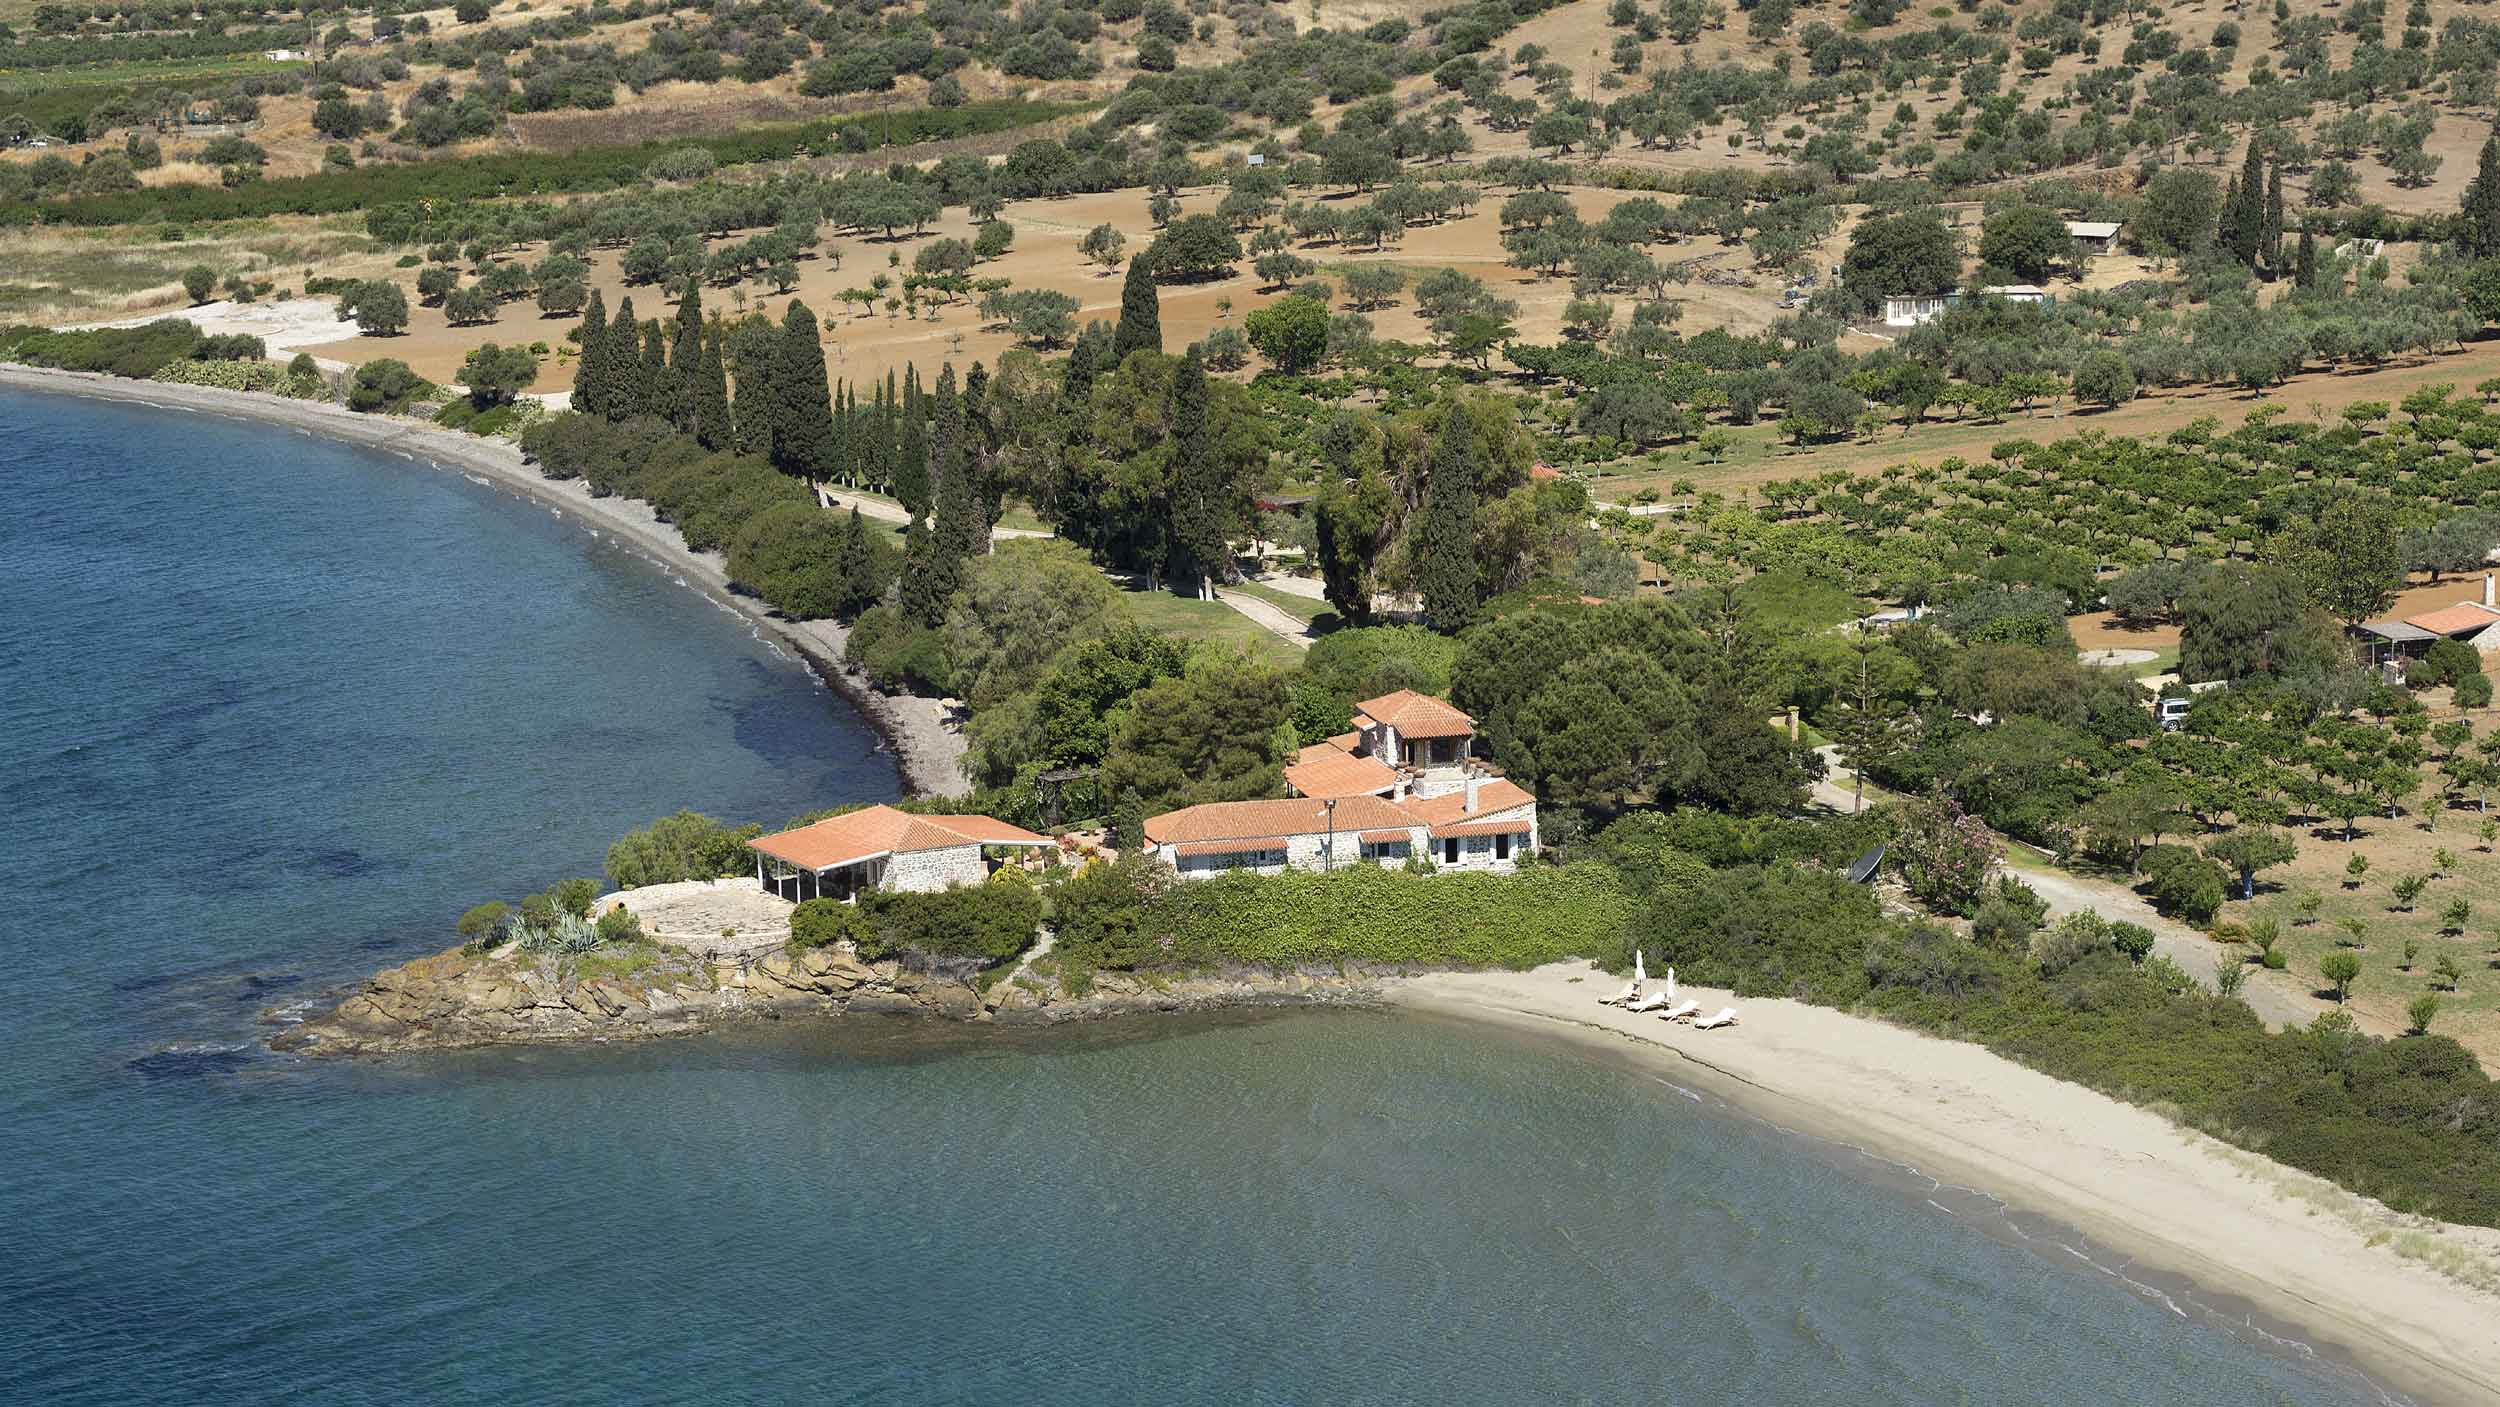 The Greek estate on the Pelopponese is an impressively self-sufficient coastal enclave with its own water sources and a 4,000-tree orchard of olives and fruit.